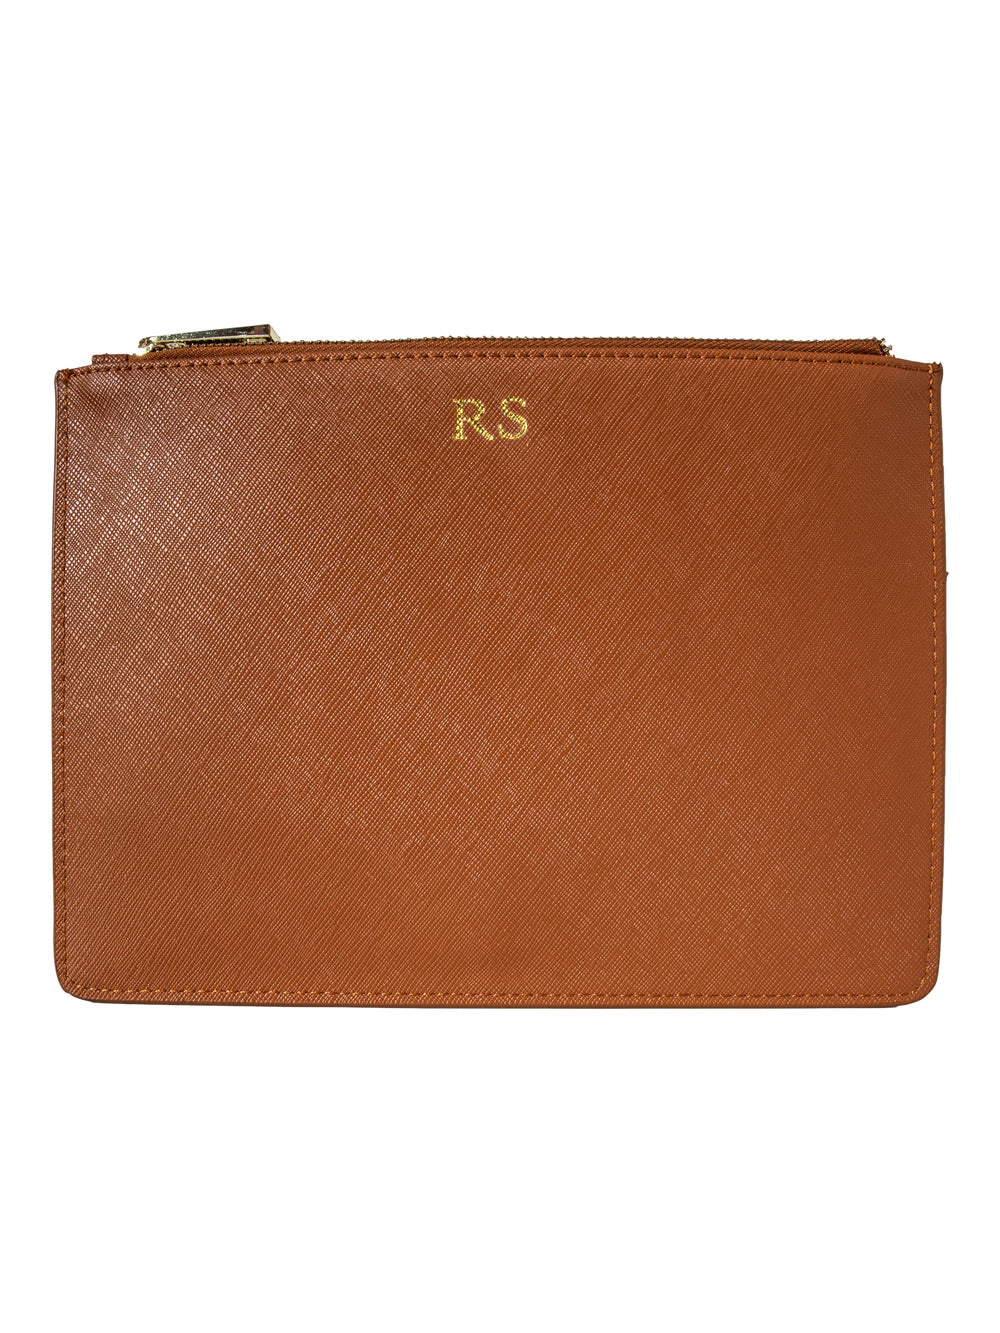 Personalized Customized Monogram Saffiano Clutch in Tan The Oak Bar Singapore